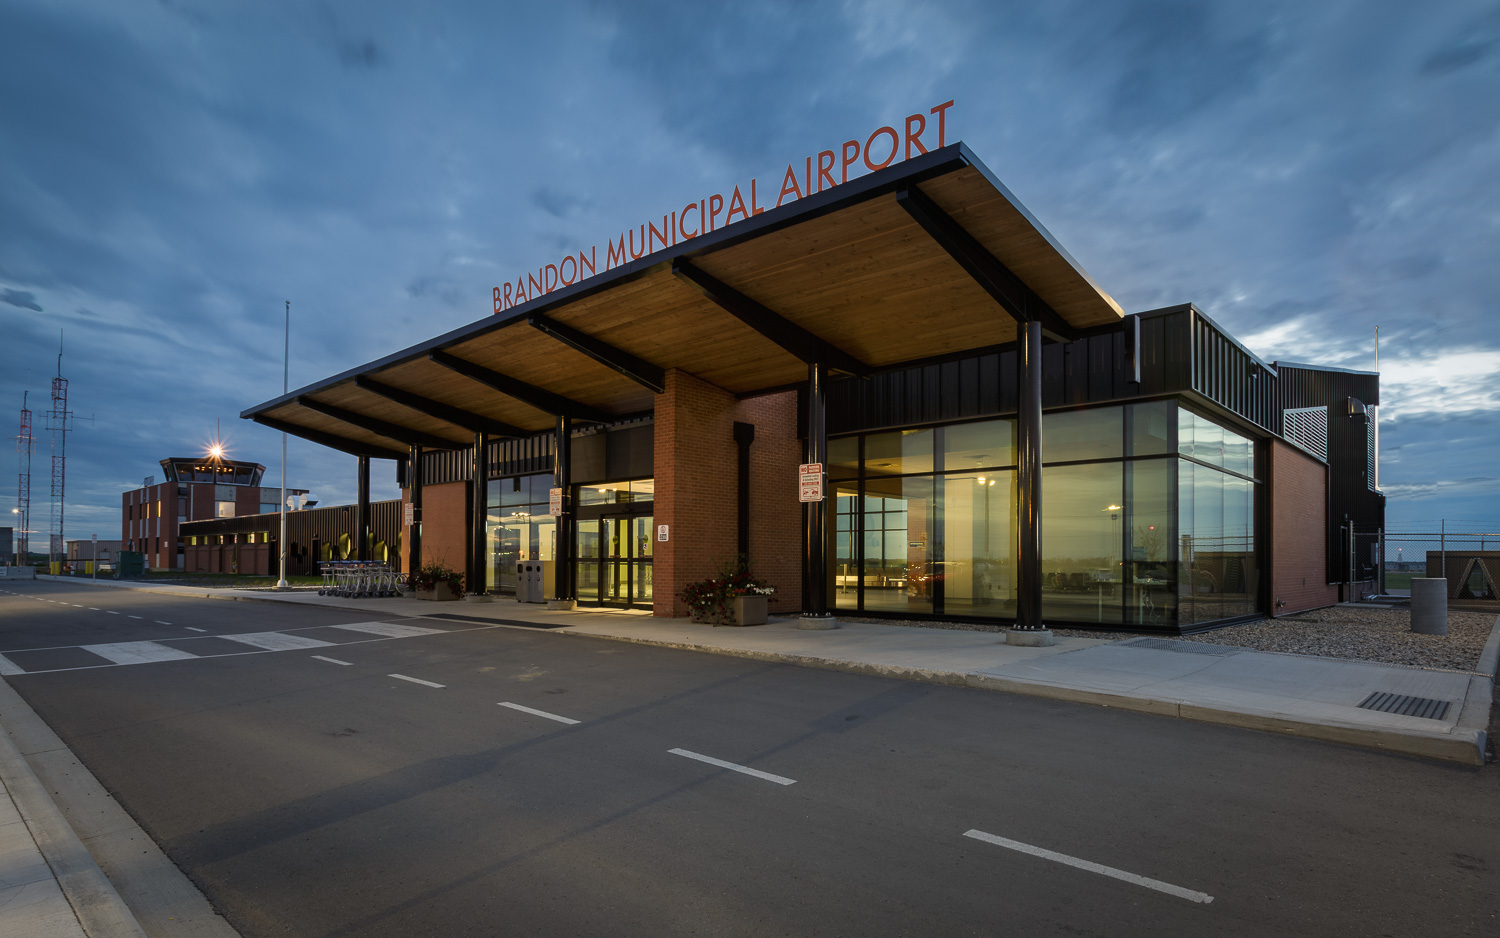 Brandon Municipal Airport, exterior photo of building at dusk / Photo:  Lindsay Reid